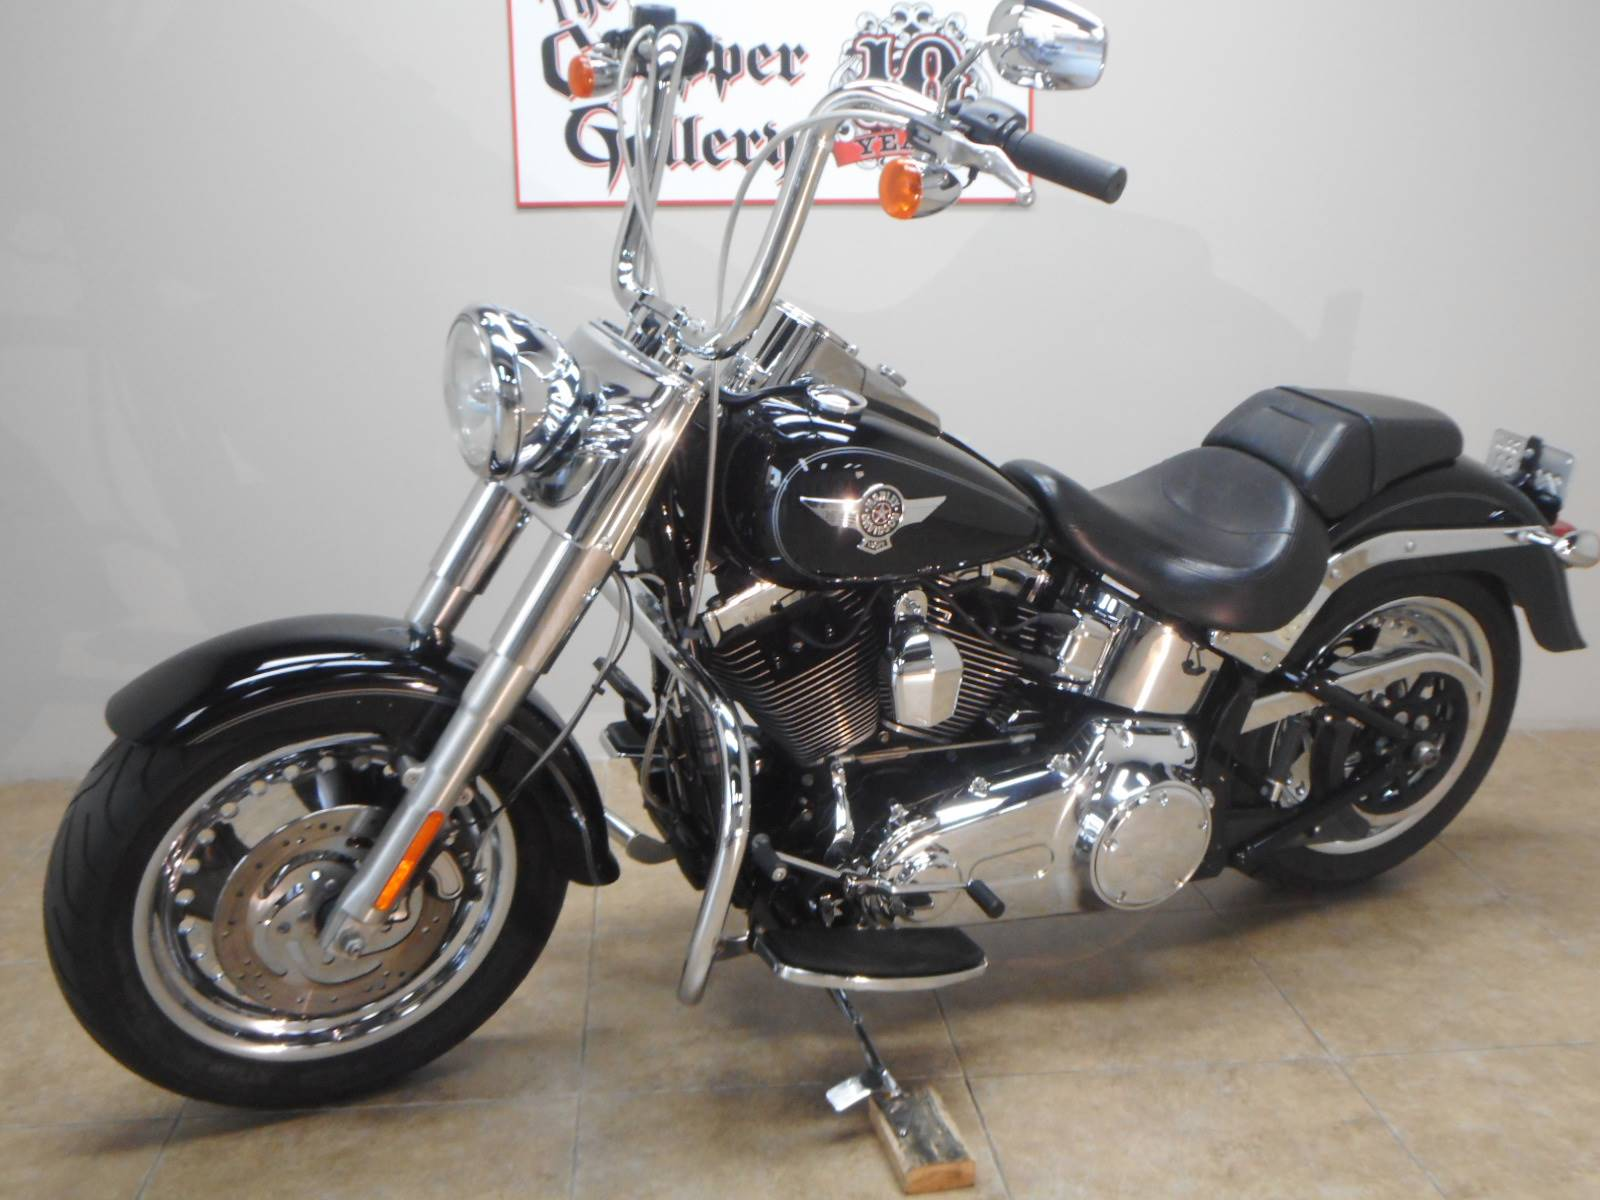 Used 2014 Harley-Davidson Fat Boy® Motorcycles in Temecula, CA ...